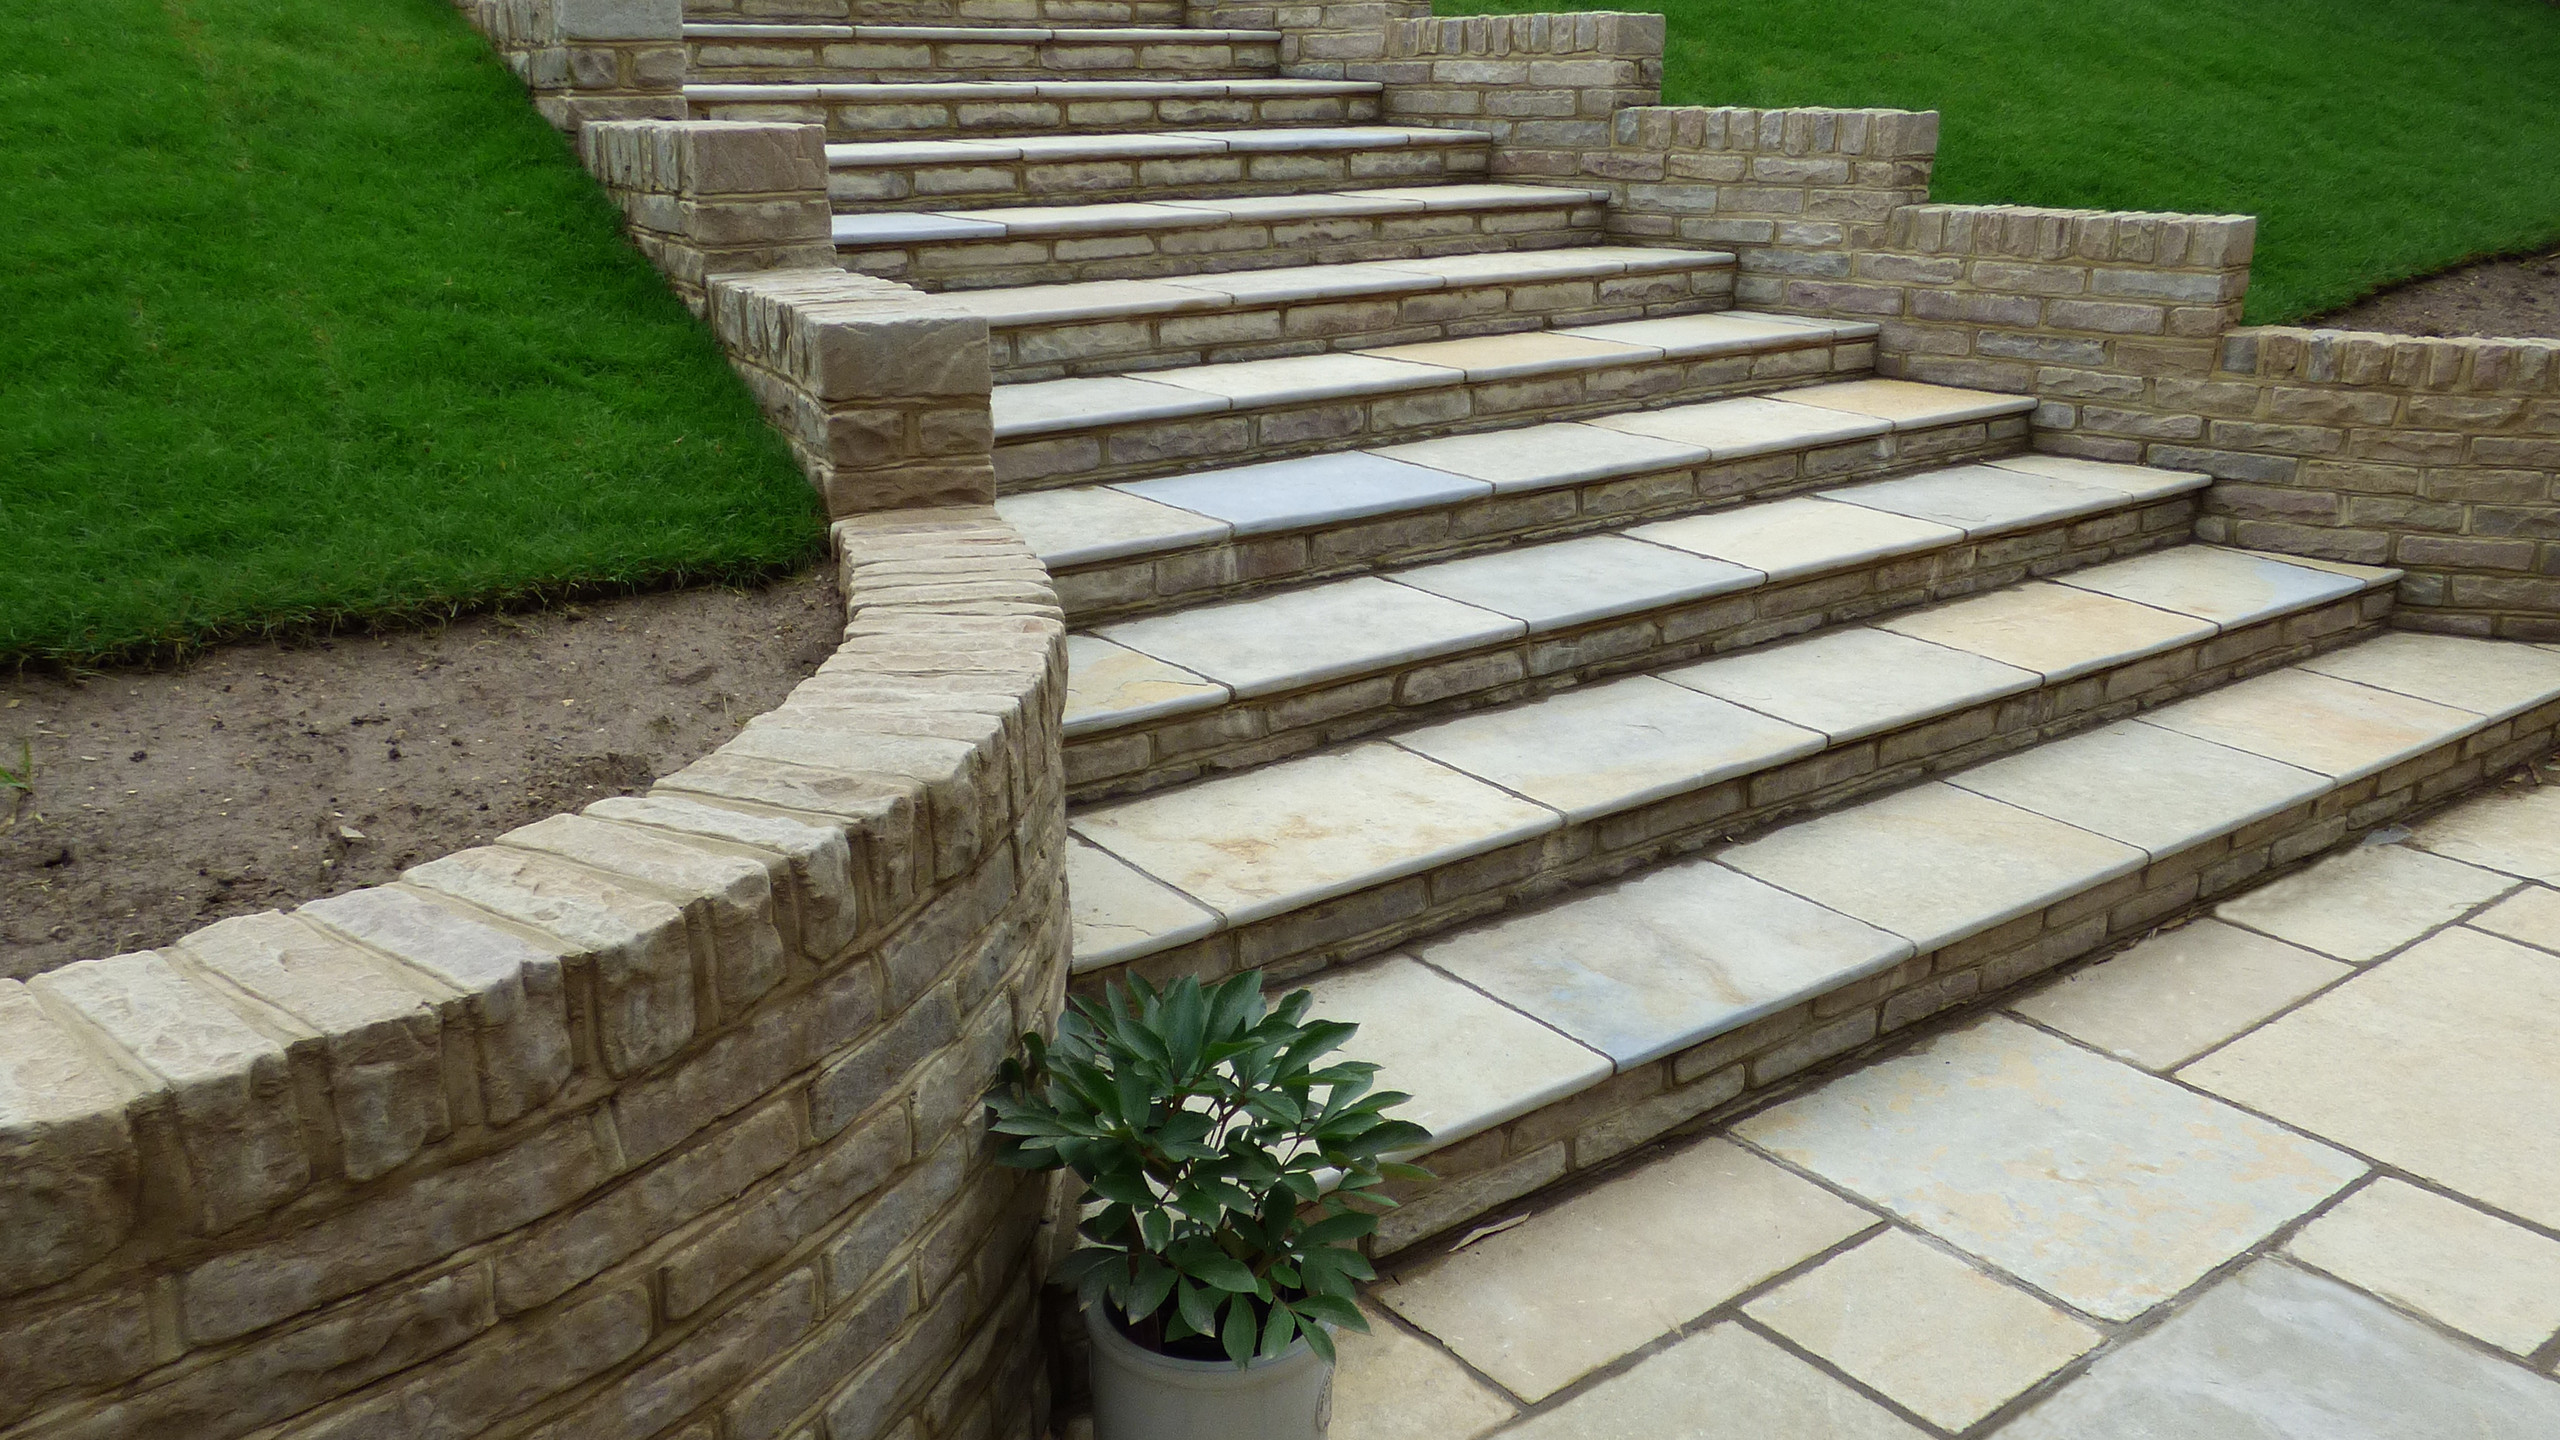 Brett Limestone patio, new lawn, steps and many retaining walls, which included tumbled sandstone walling and timber clad concrete retaining walls.